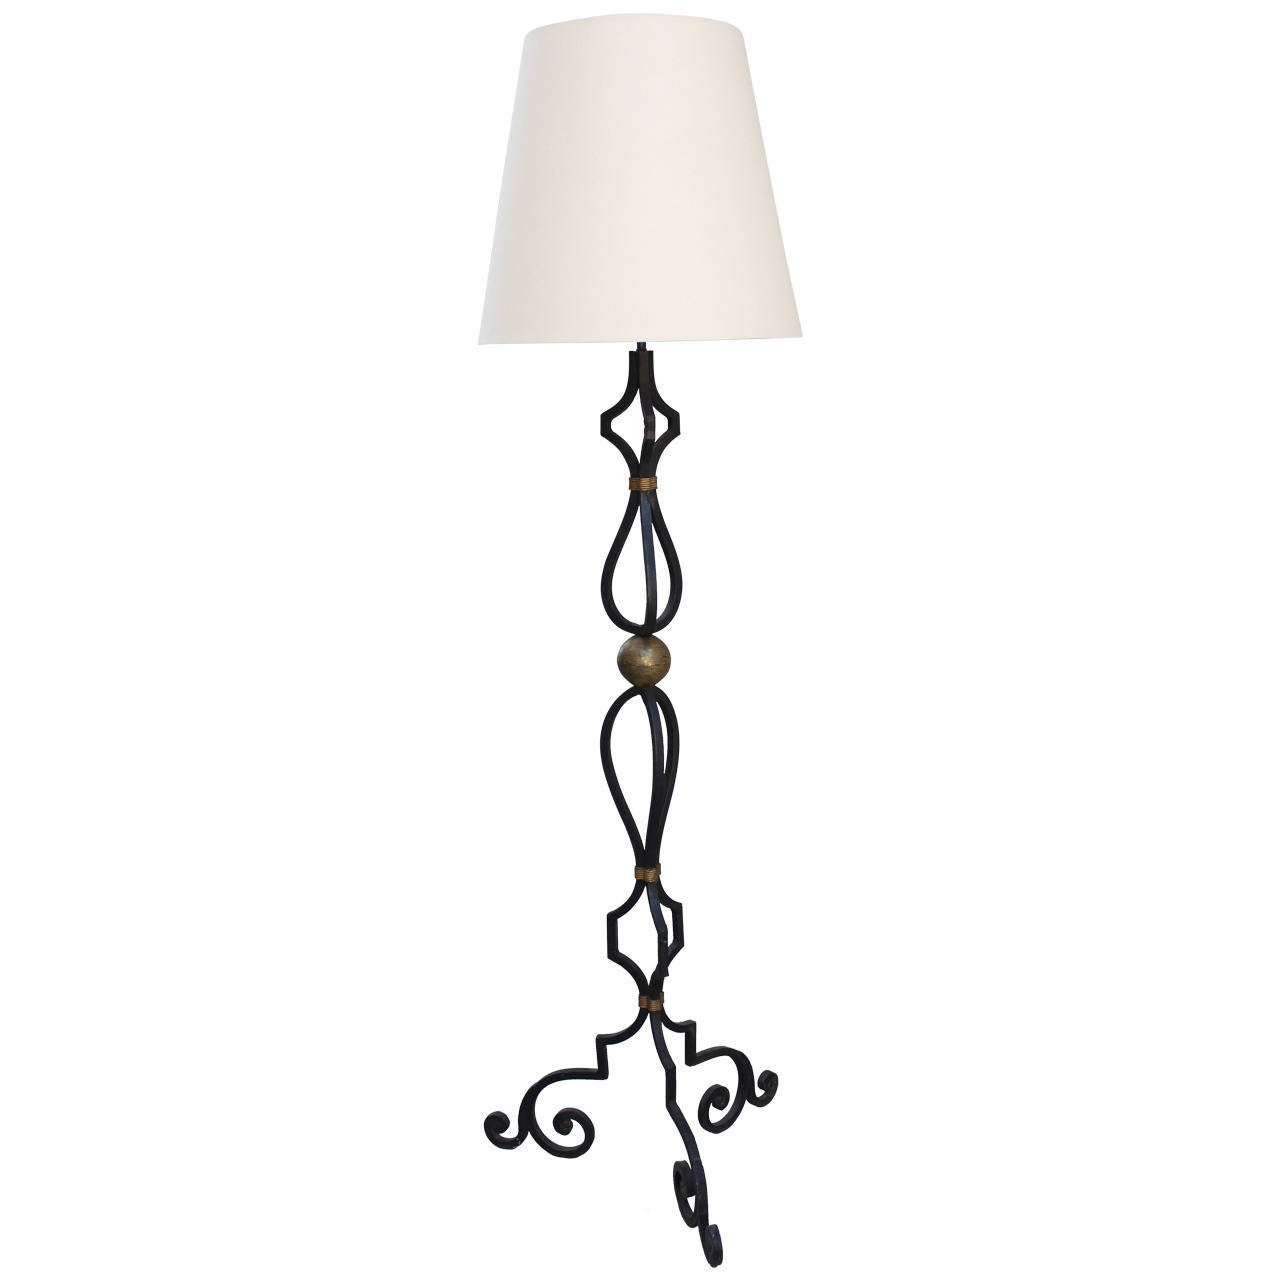 manufacturer name floor buy hansel arteriors iron lamp by natural the